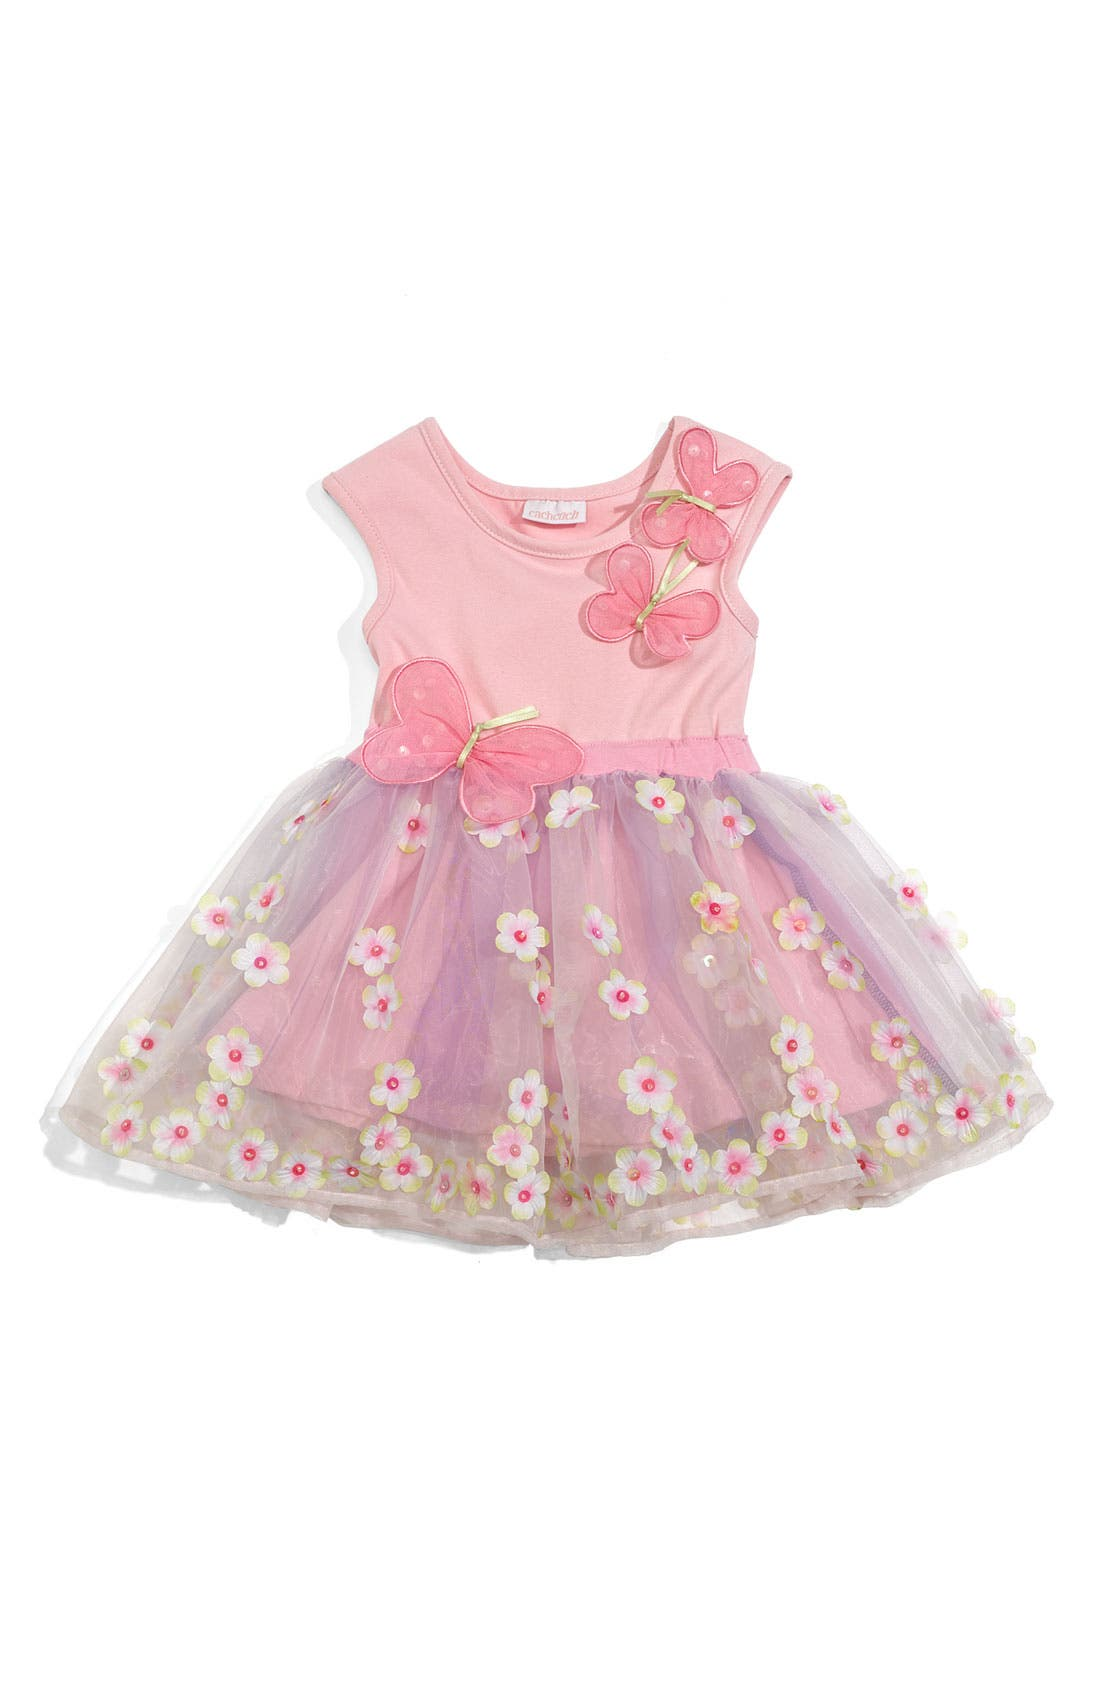 Alternate Image 1 Selected - CachCach 'Butterfly' Dress (Toddler)